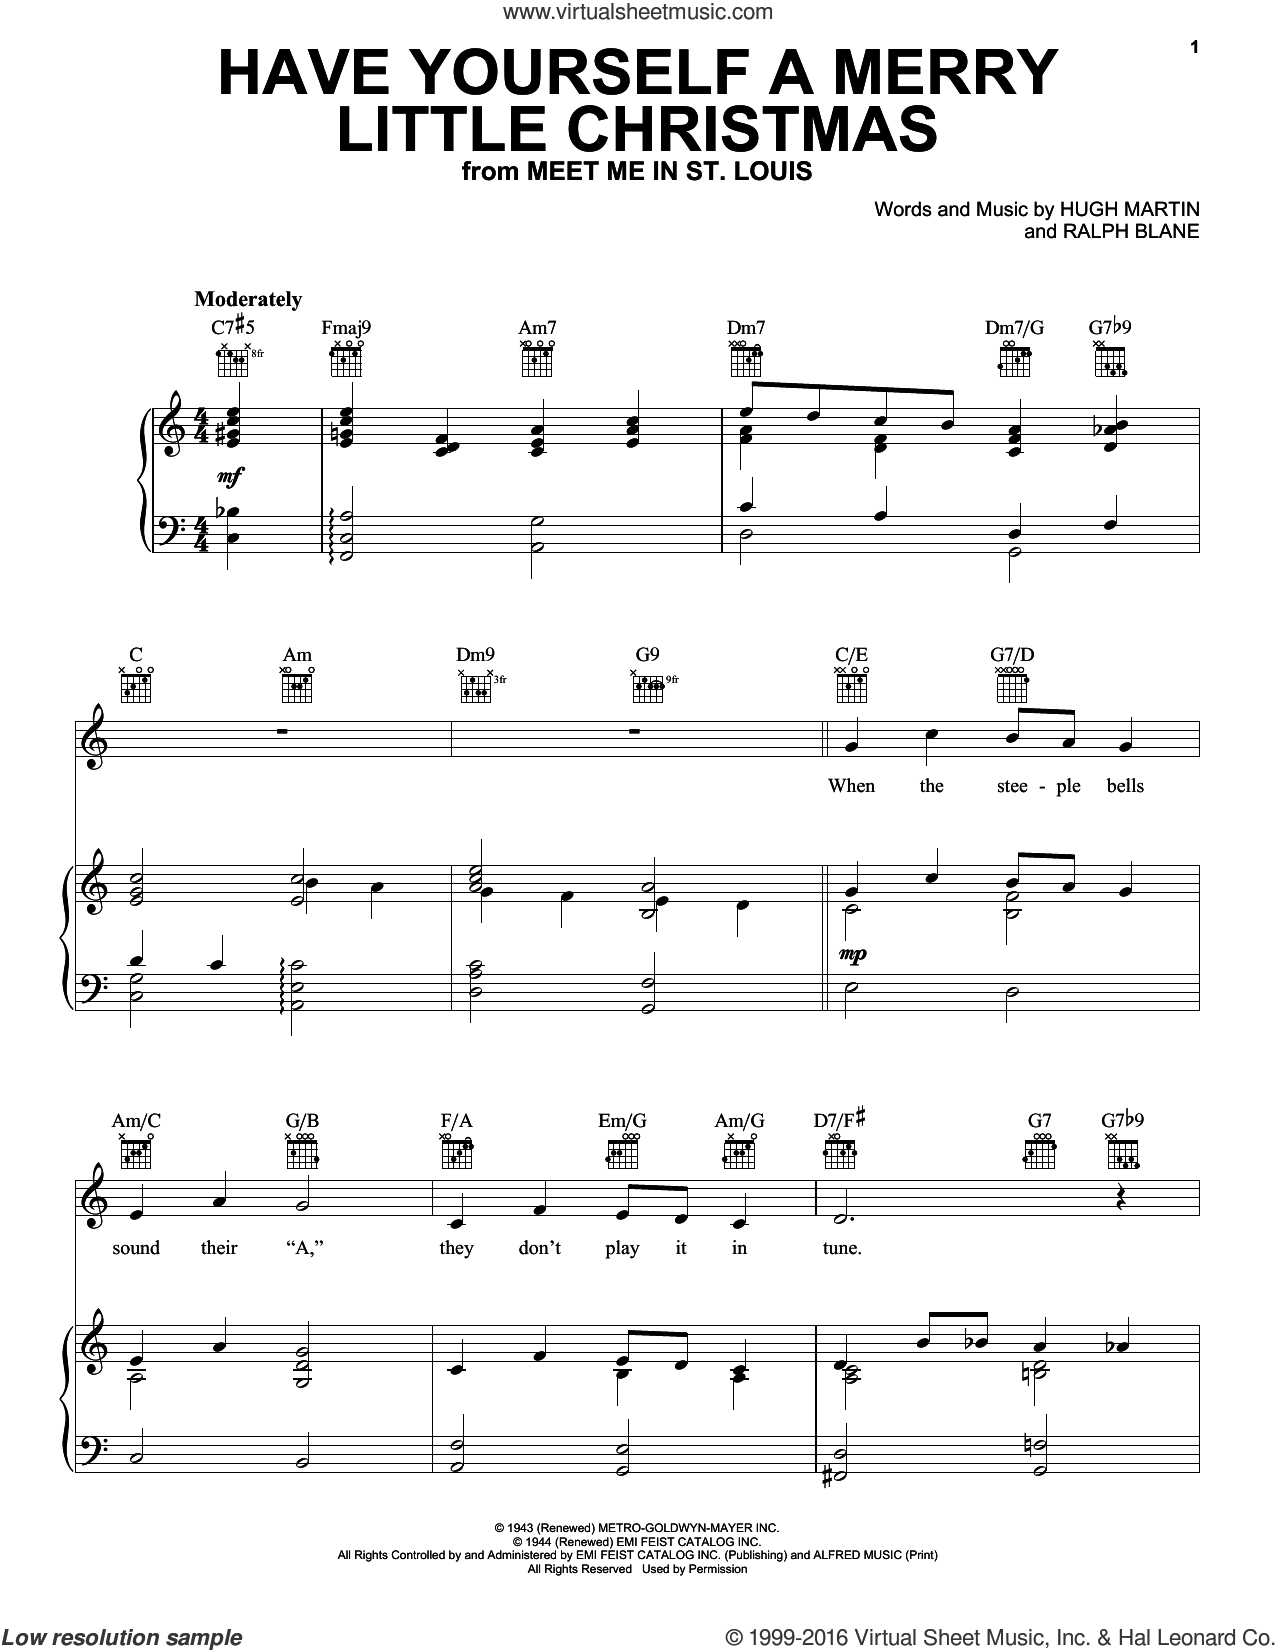 Merry Little Christmas Lyrics.Sinatra Have Yourself A Merry Little Christmas Sheet Music